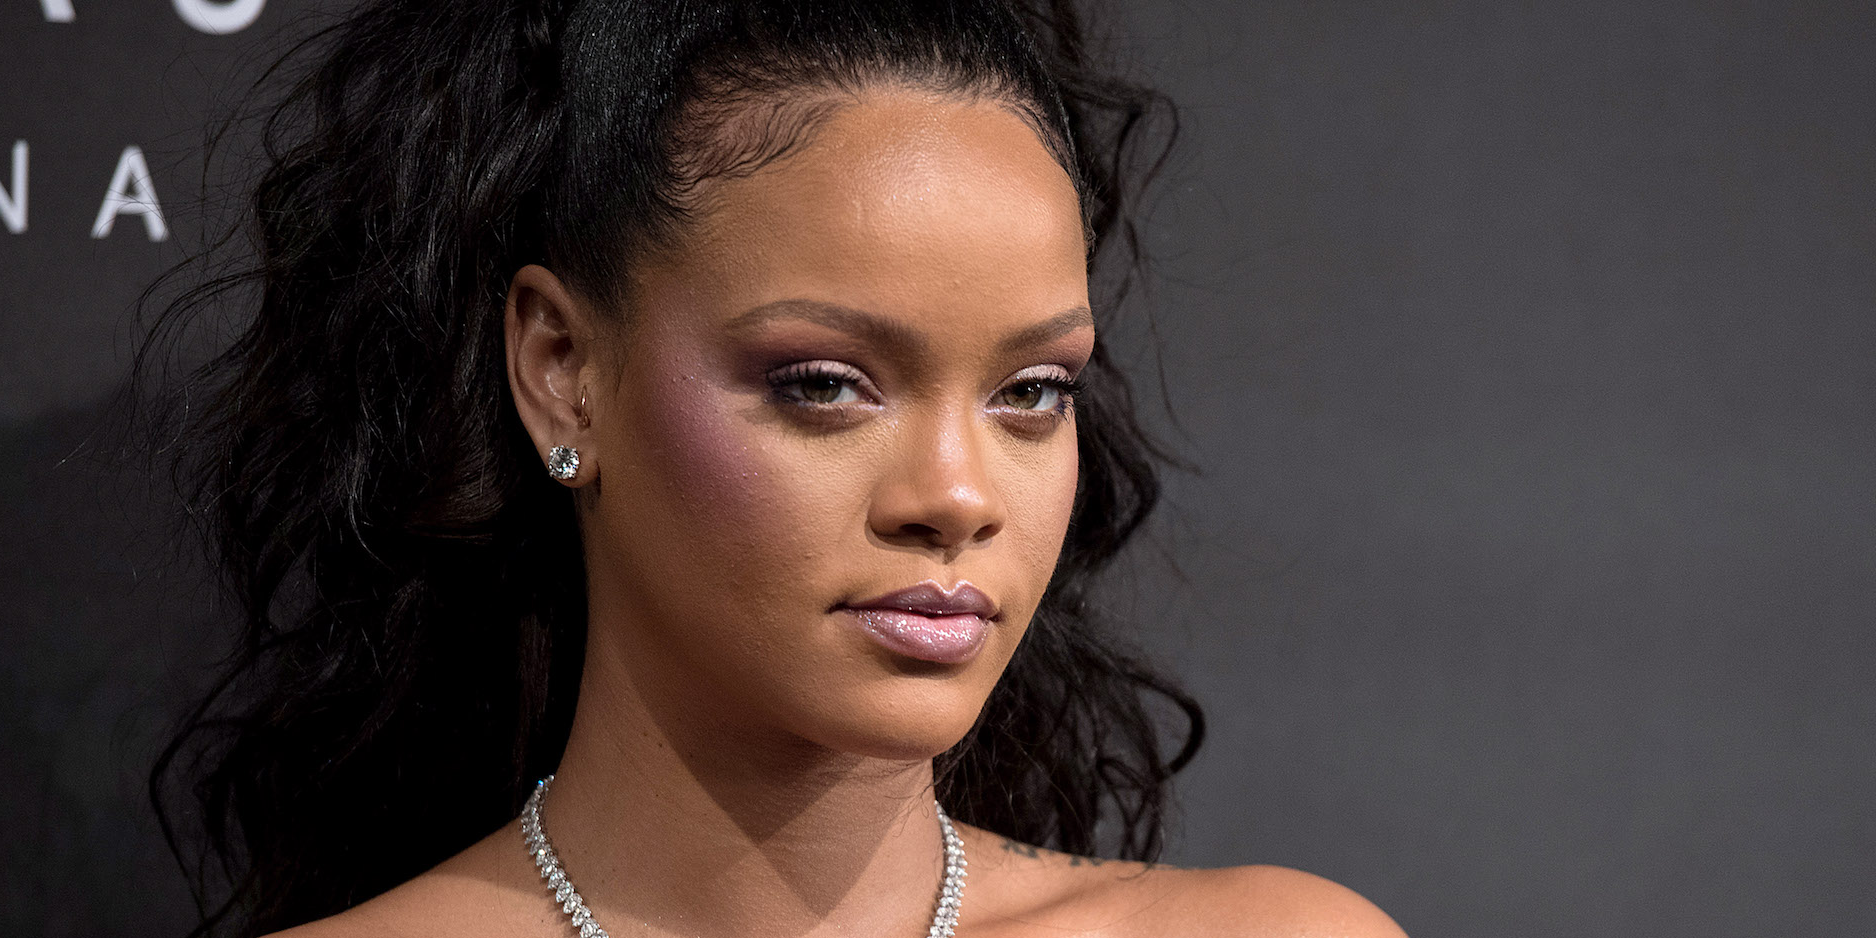 Rihanna responds to the Snapchat ad making light of Chris Brown's brutal attack on her: 'Shame on you' (SNAP)